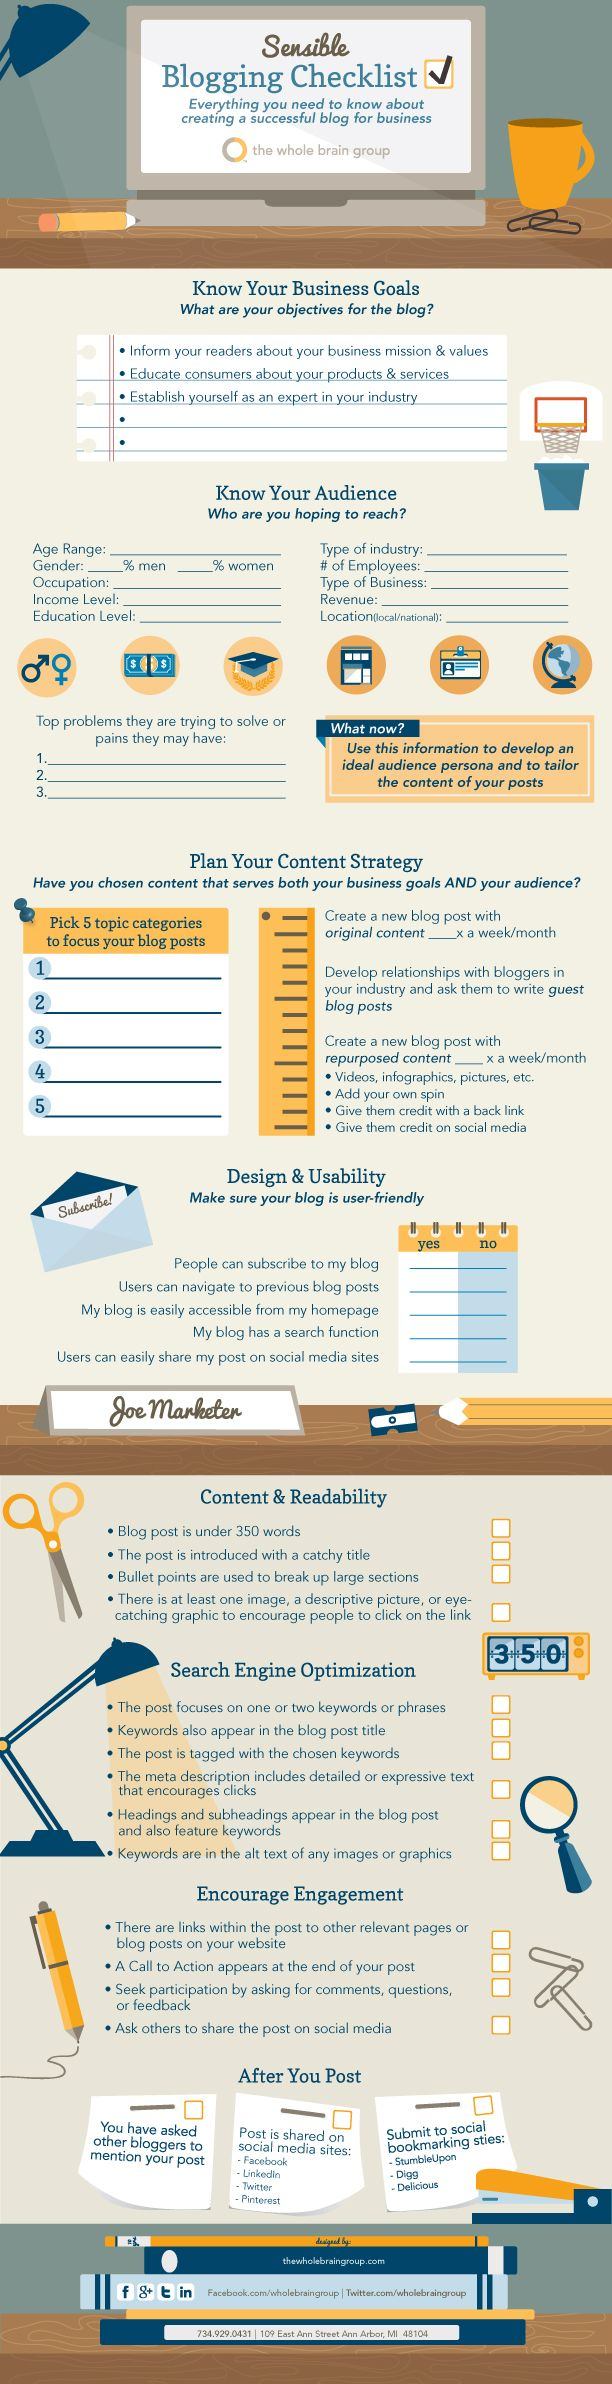 #Blogging Checklist [INFOGRAPHIC] - A sensible blogging checklist for successful business blogs.